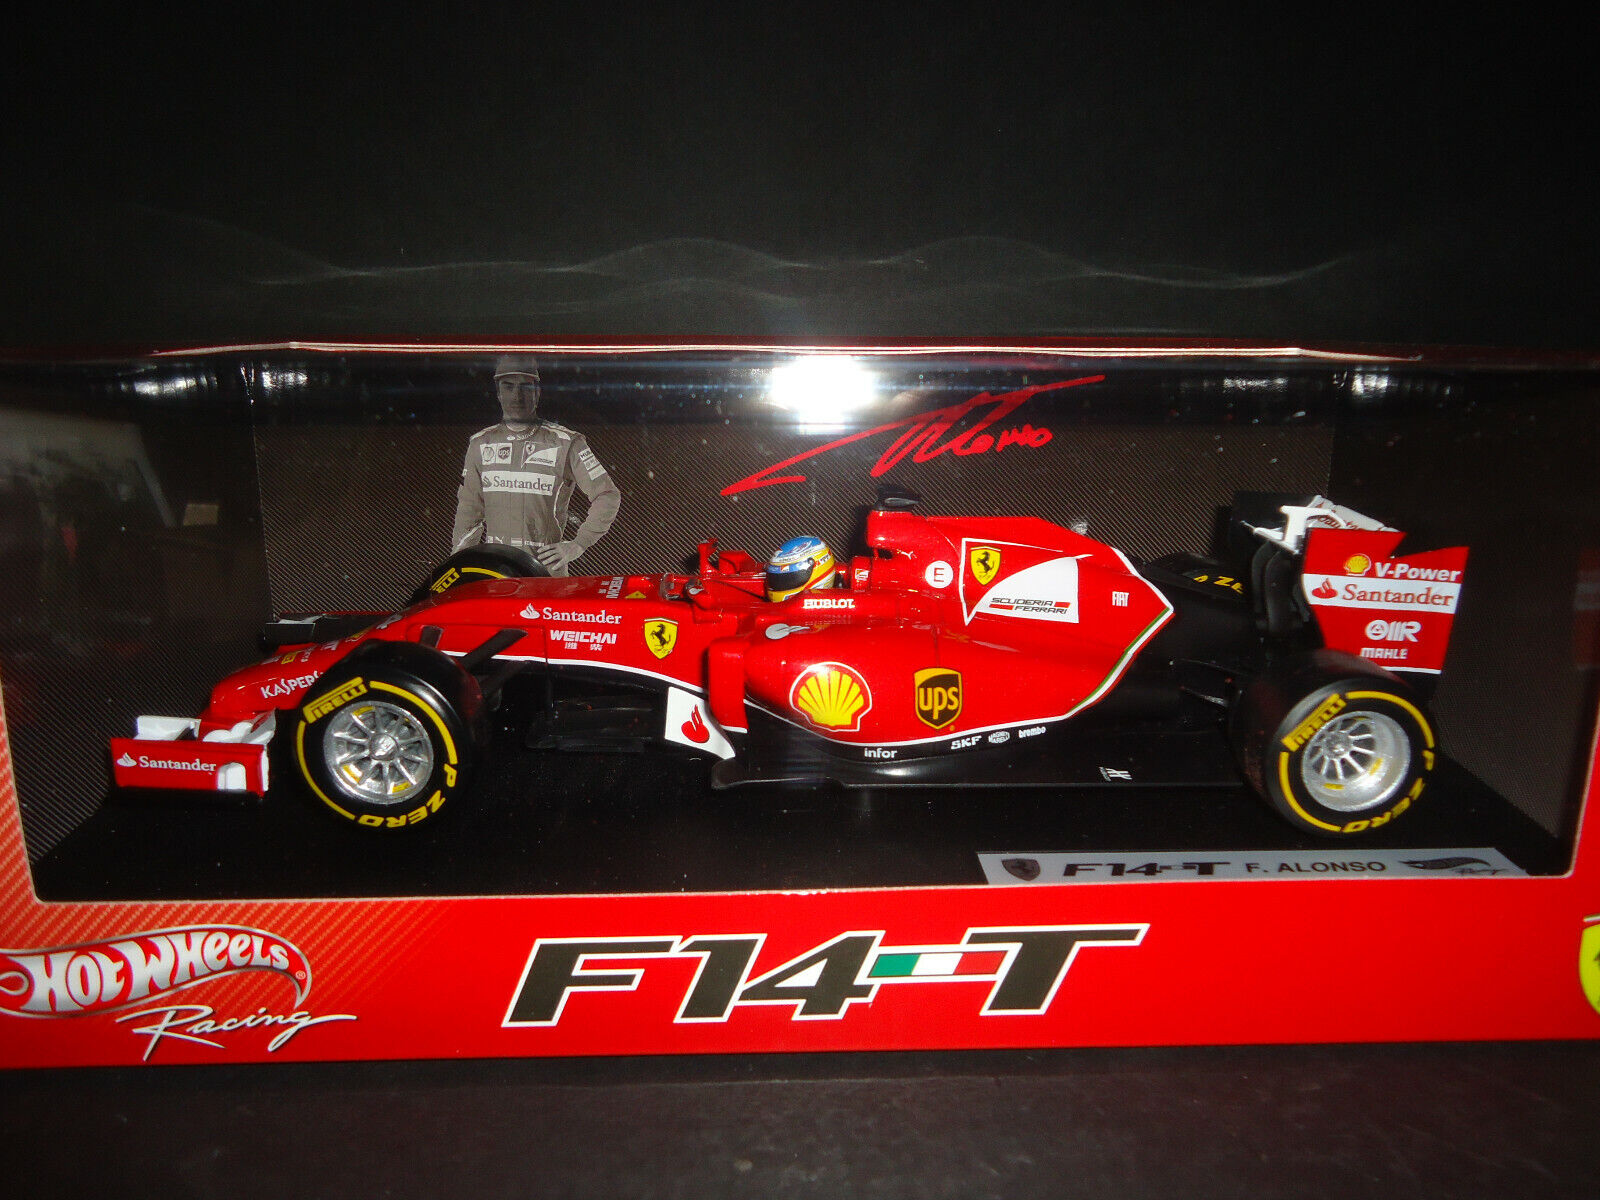 Détails About Hot Wheels Ferrari F1 F14 T 2014 Fernando Alonso BLY67 1 18